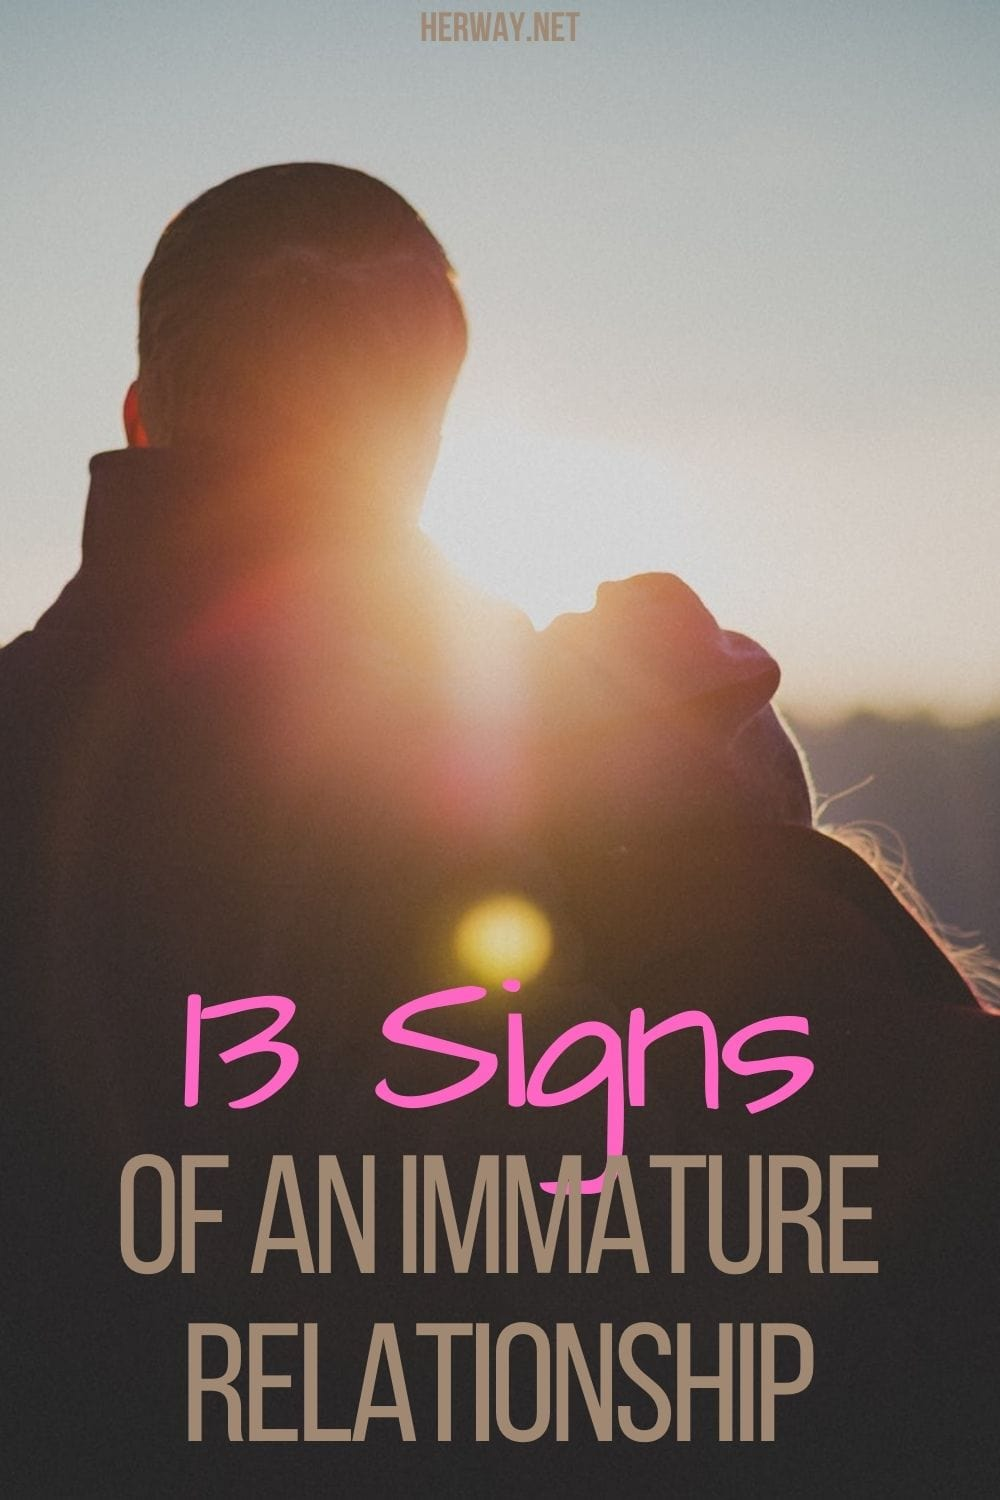 13 Signs Of An Immature Relationship